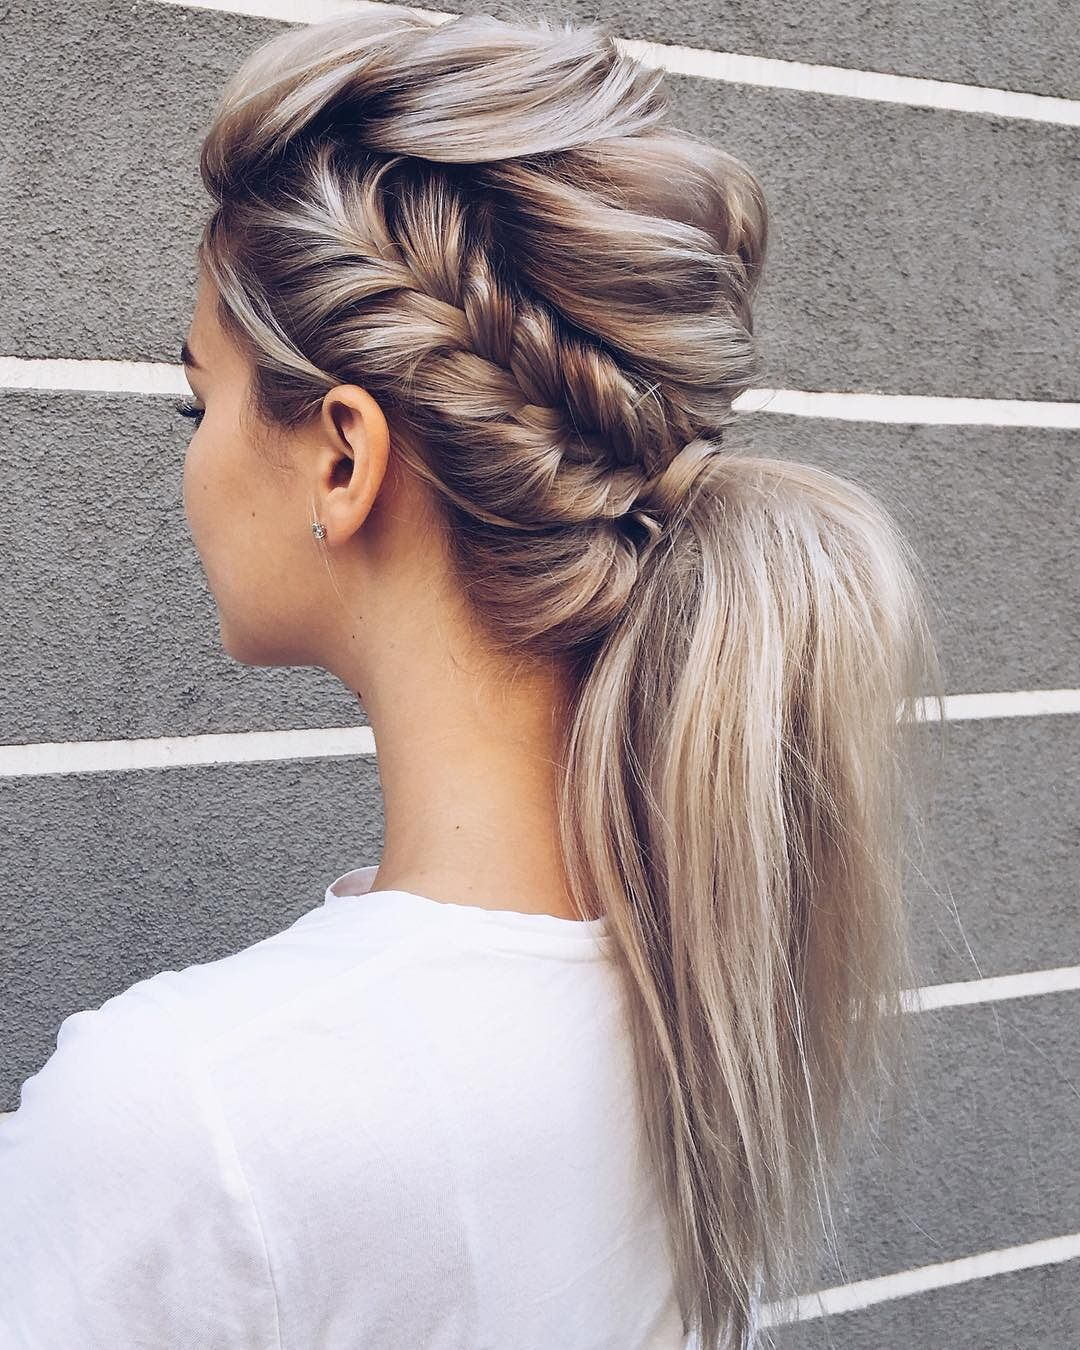 Texture Is To A Perfect Pony With Braided Accents For This Weekend Do Use Infusion Keratin Re Braided Ponytail Hairstyles Hair Styles Long Hair Styles